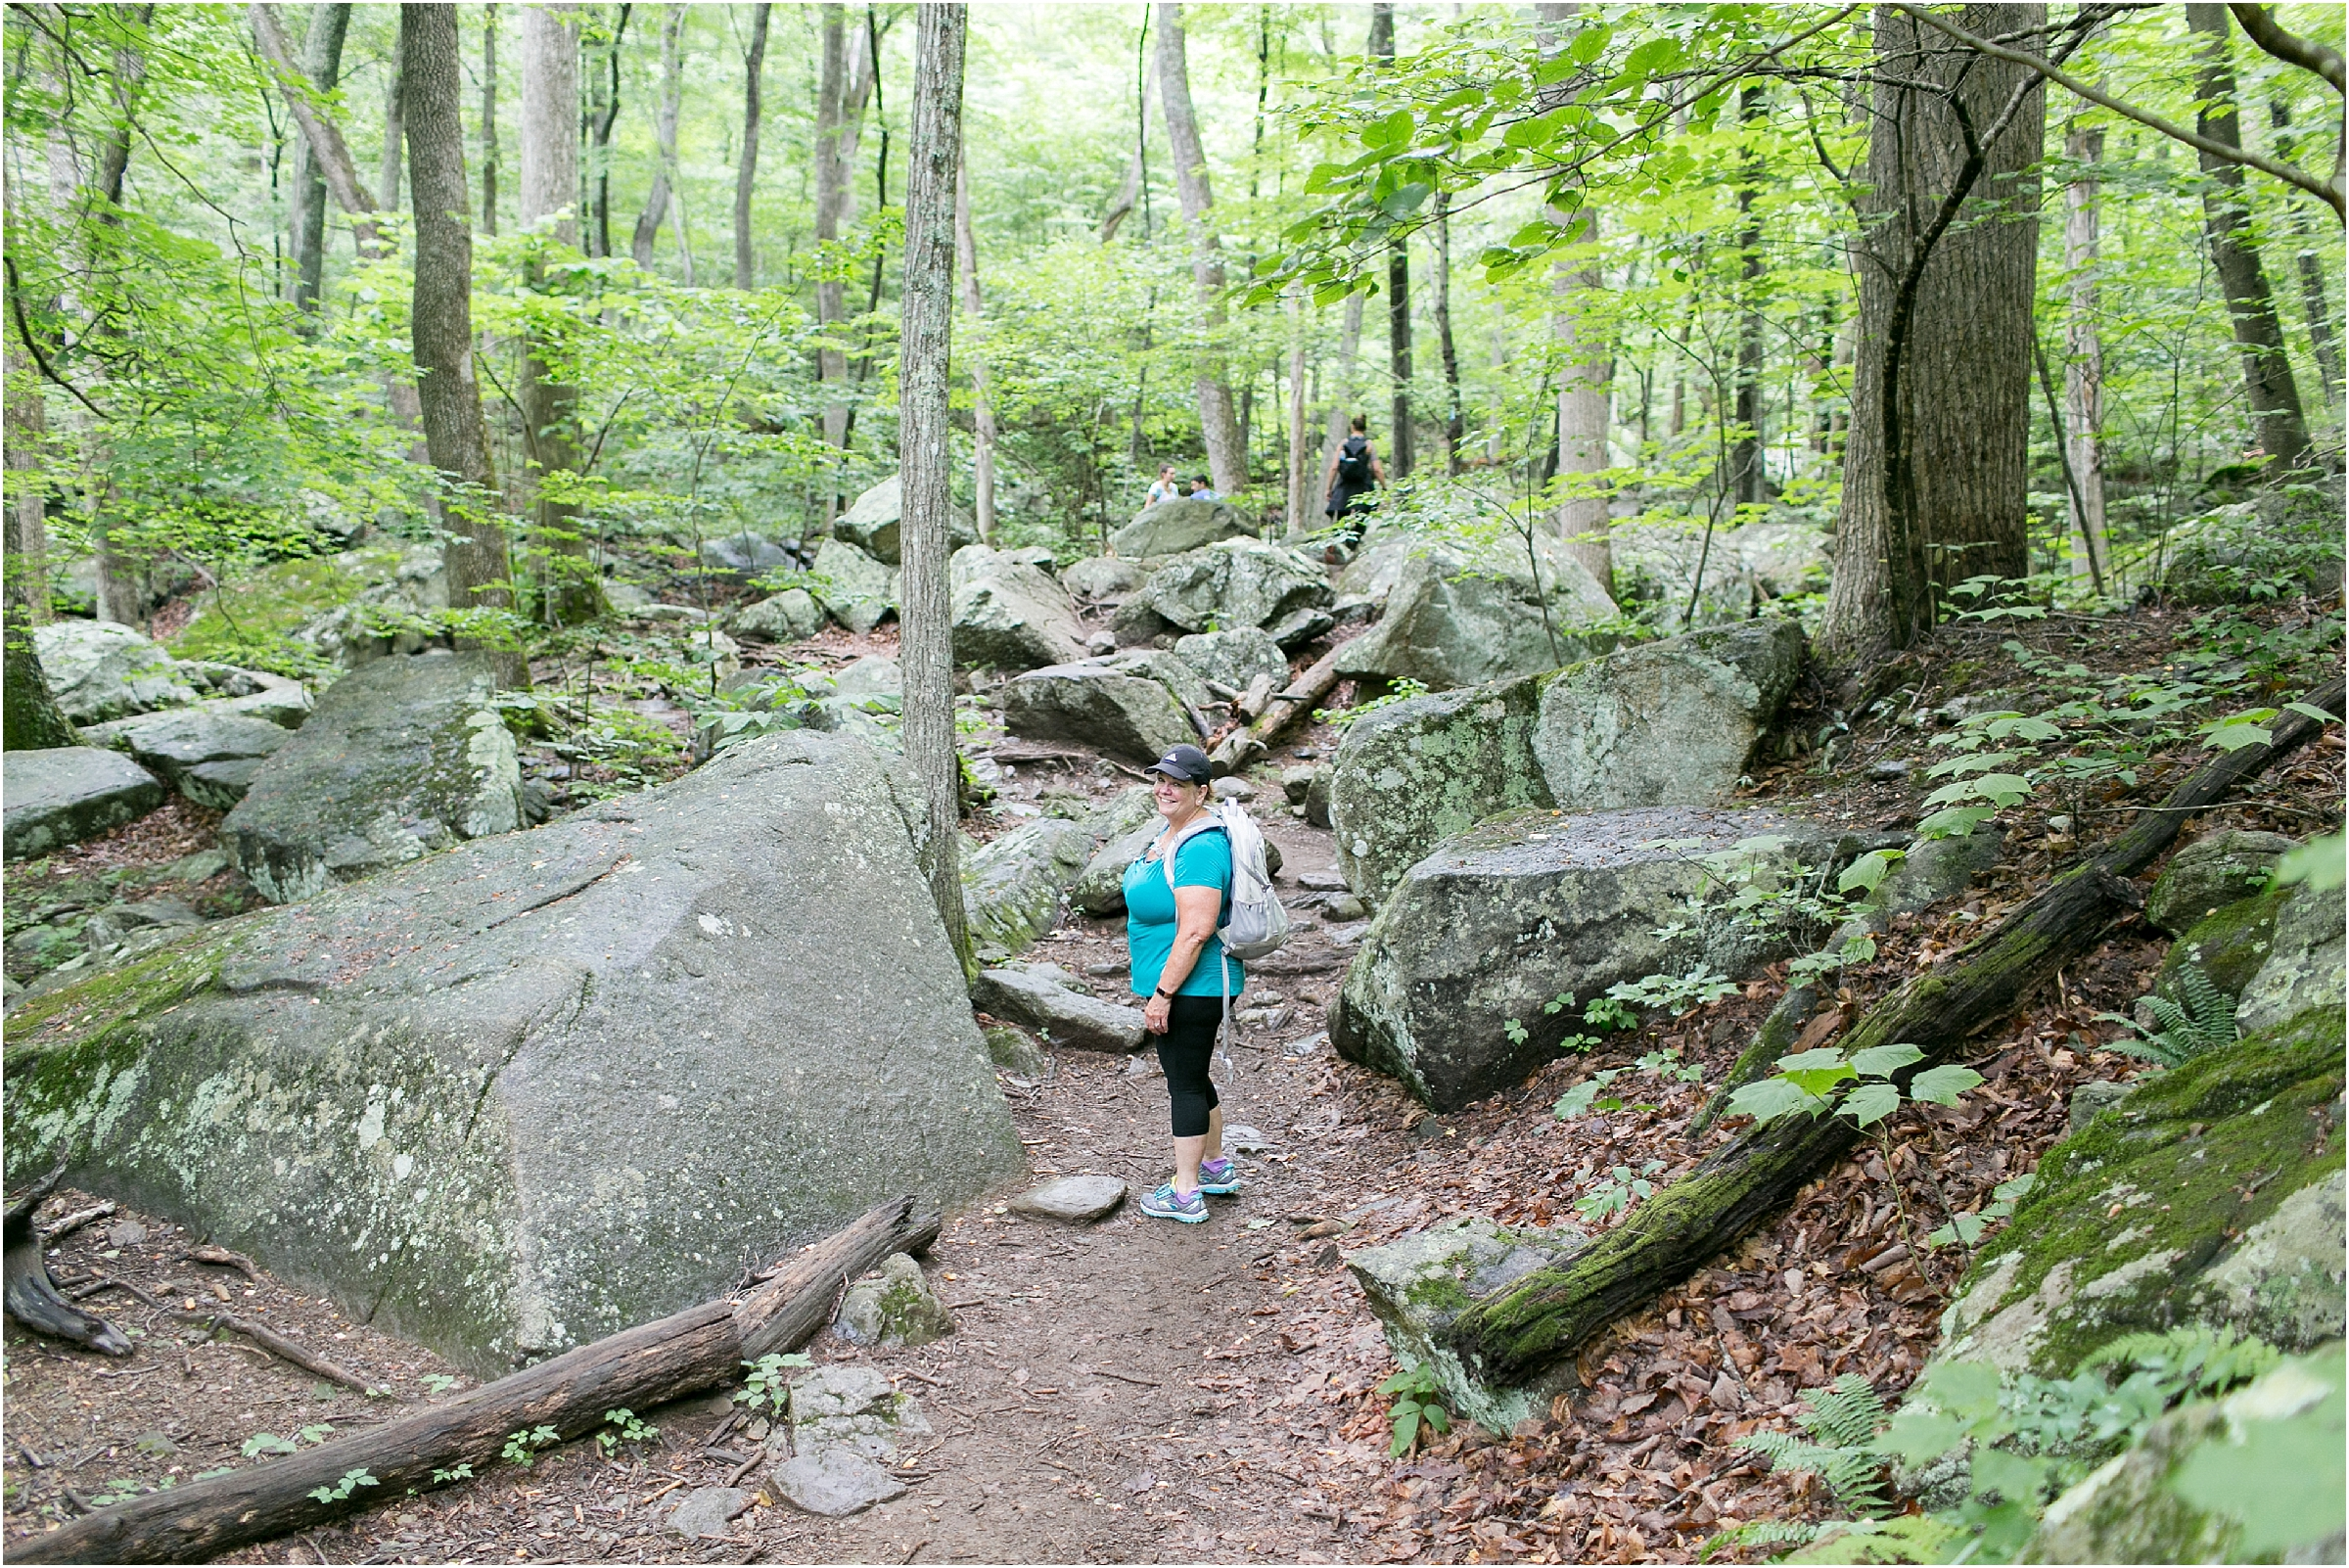 her hike collective hiking at white oak canyon in the Shenandoah national park